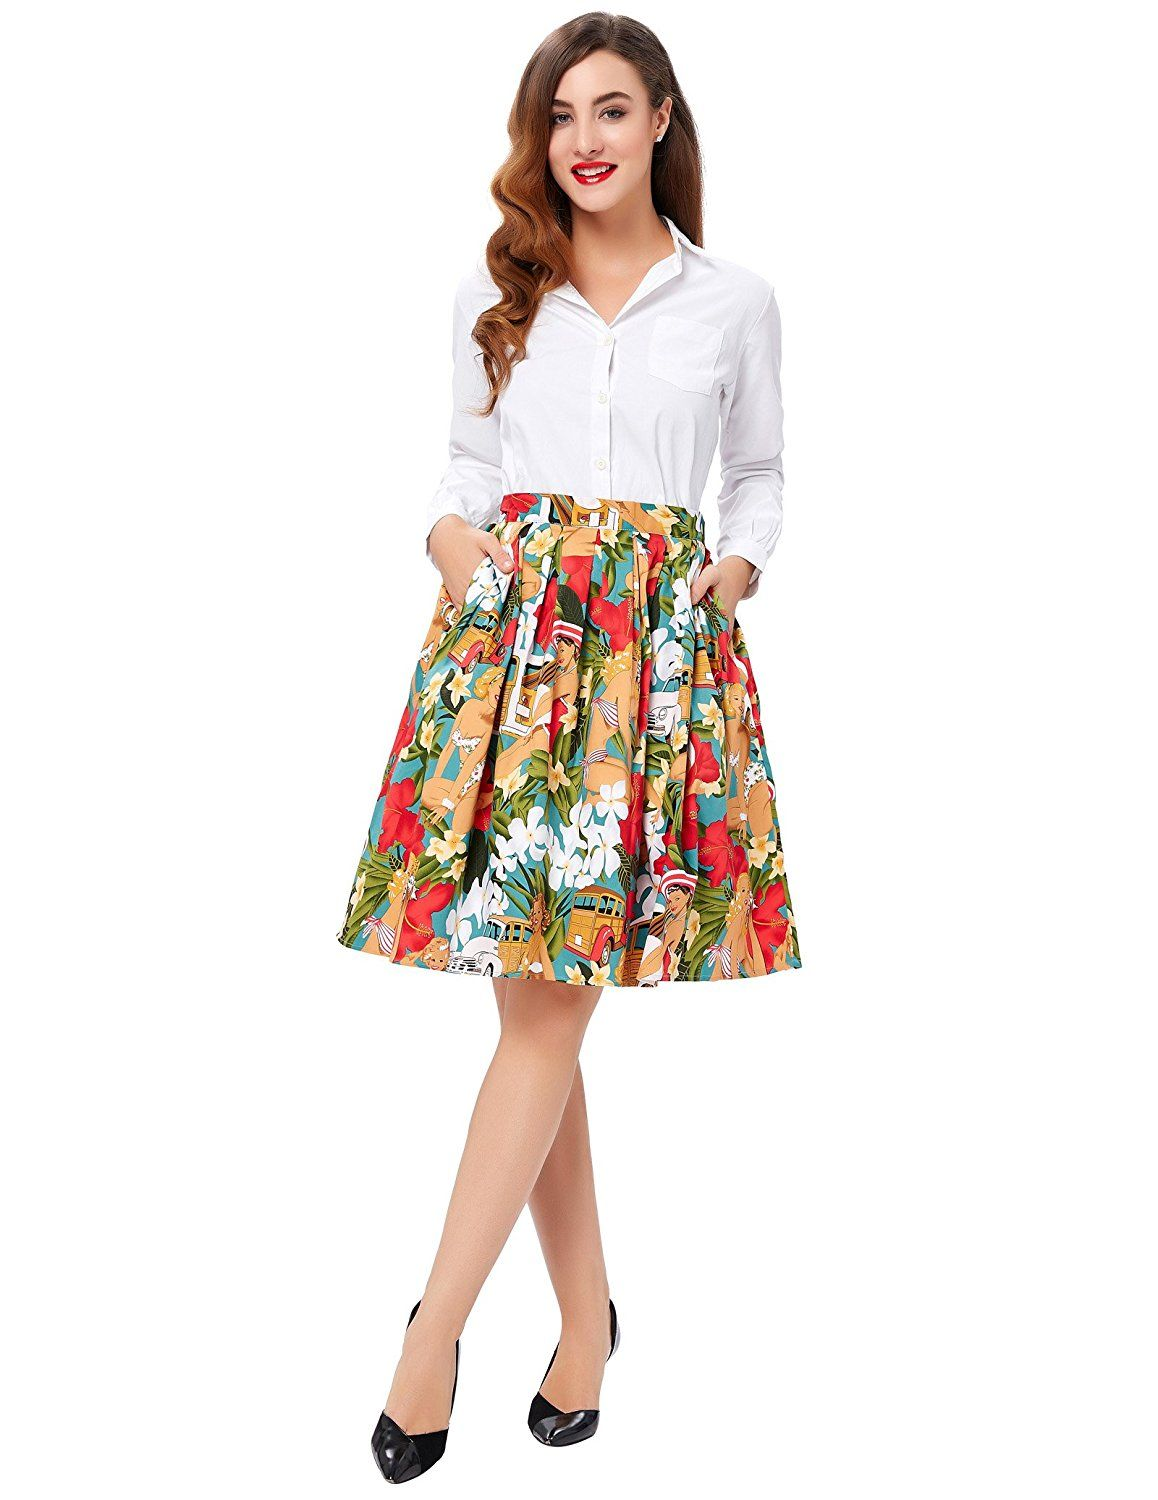 44d2d5df0e GRACE KARIN A-Line Pleated Vintage Skirts for Women CL6294 (Multi-Colored)  at Amazon Women's Clothing store: